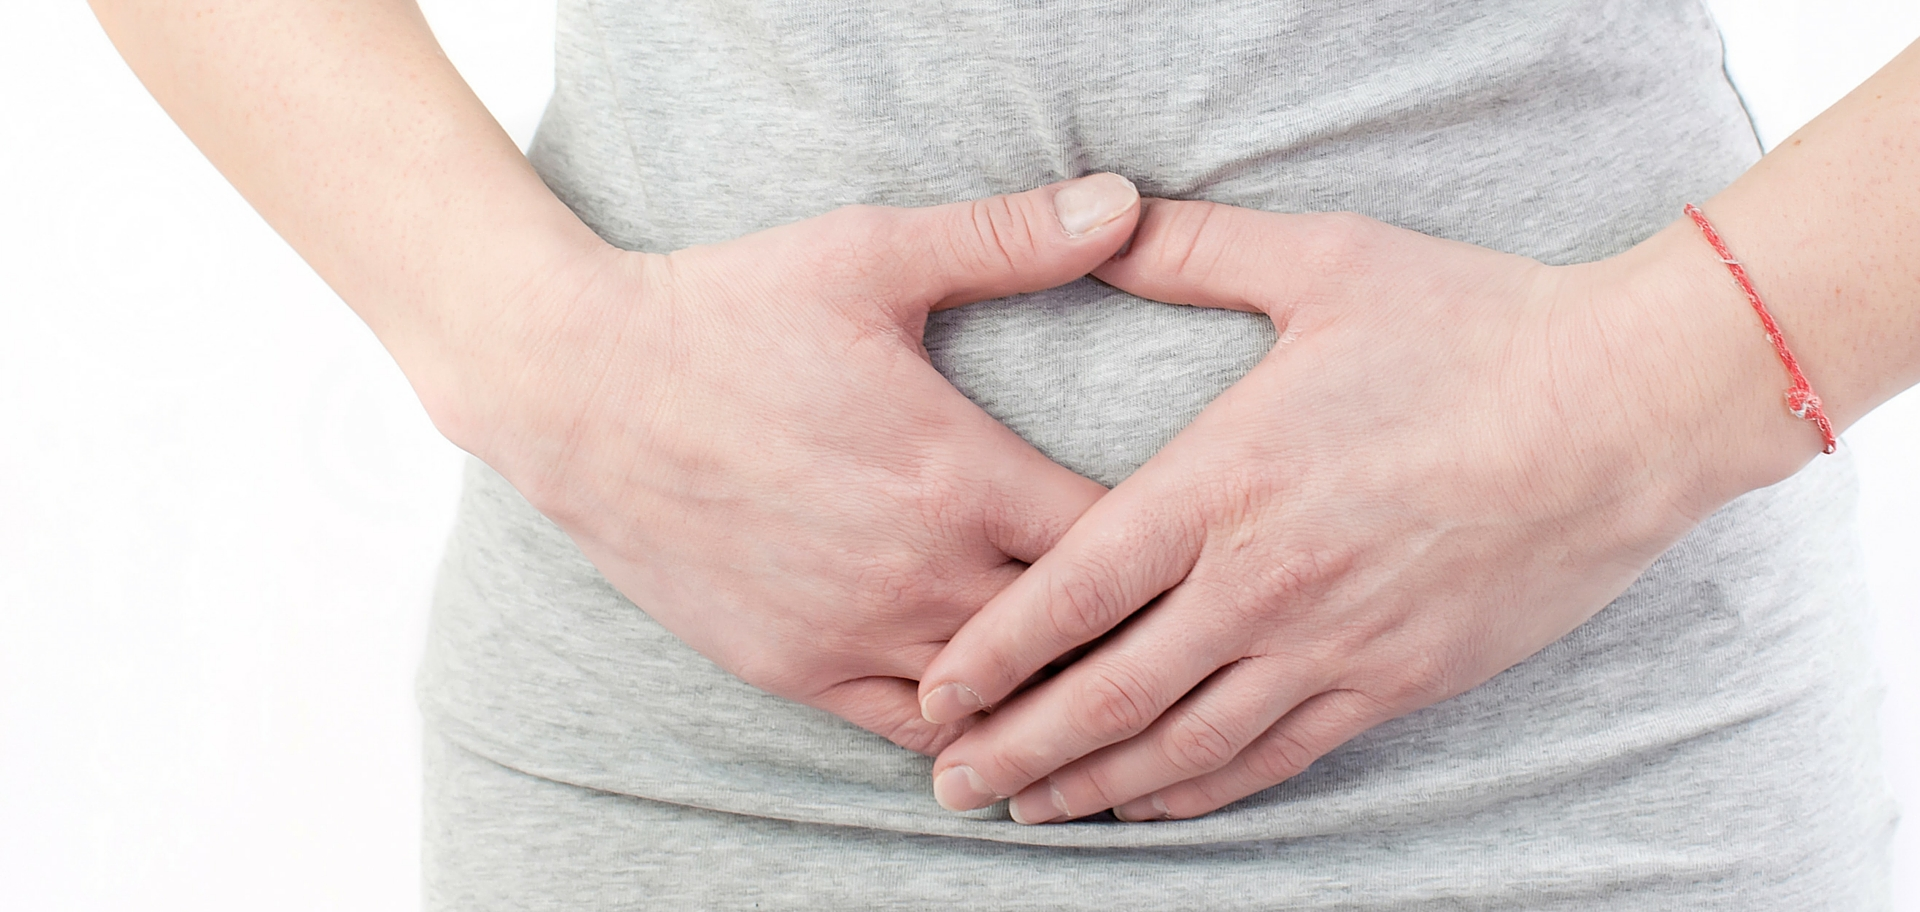 6 NATURAL WAYS TO ALLEVIATE SYMPTOMS OF IBS